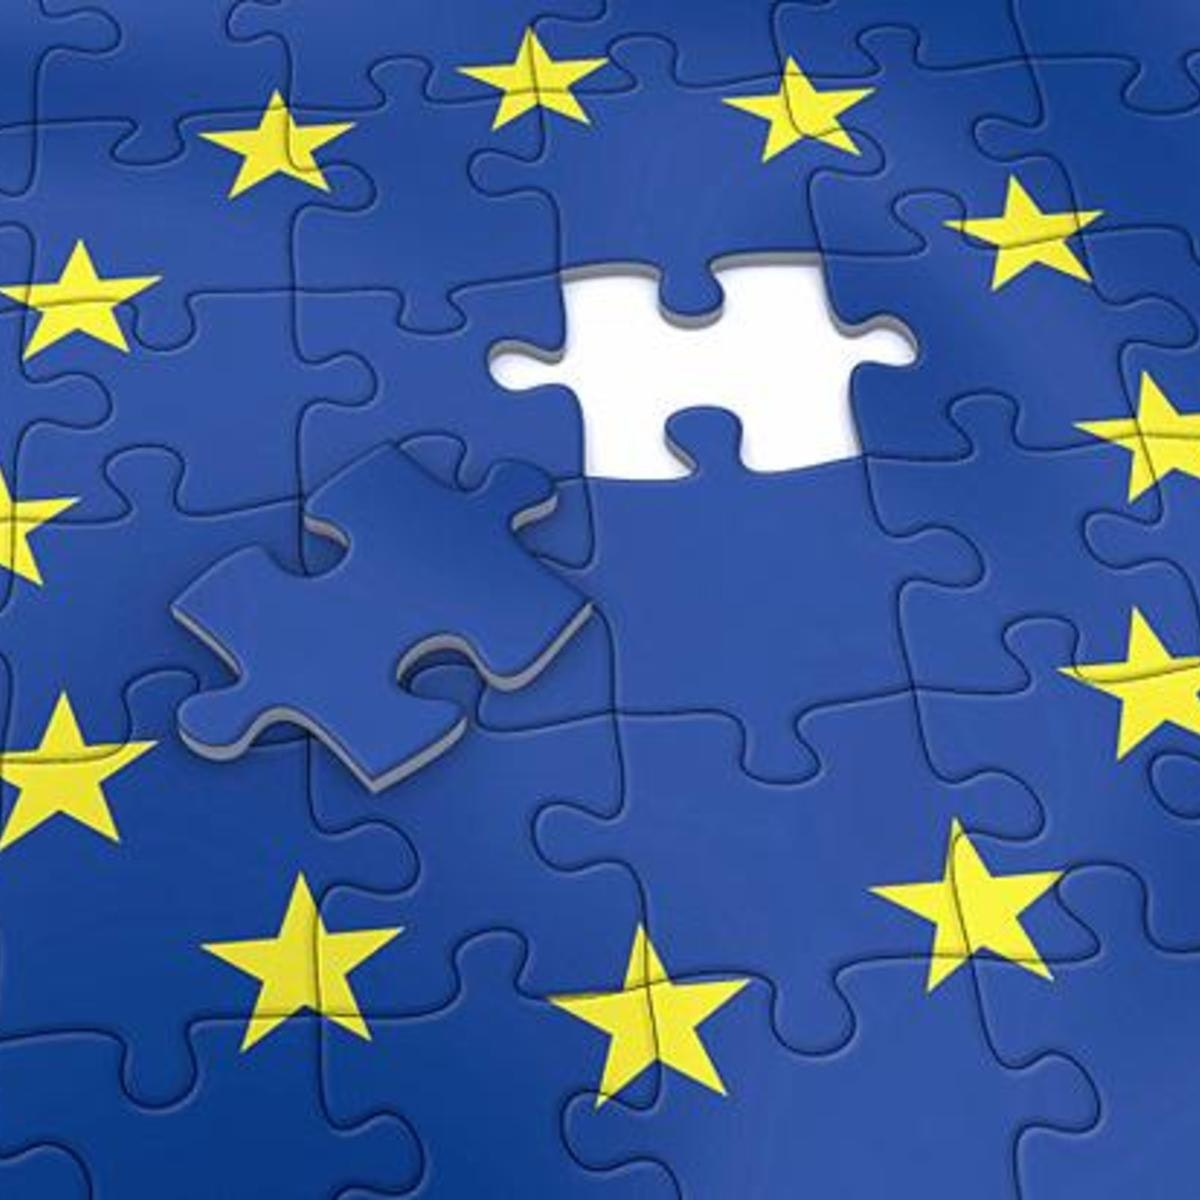 The European Union integration: history, culture, political economy and key institutions